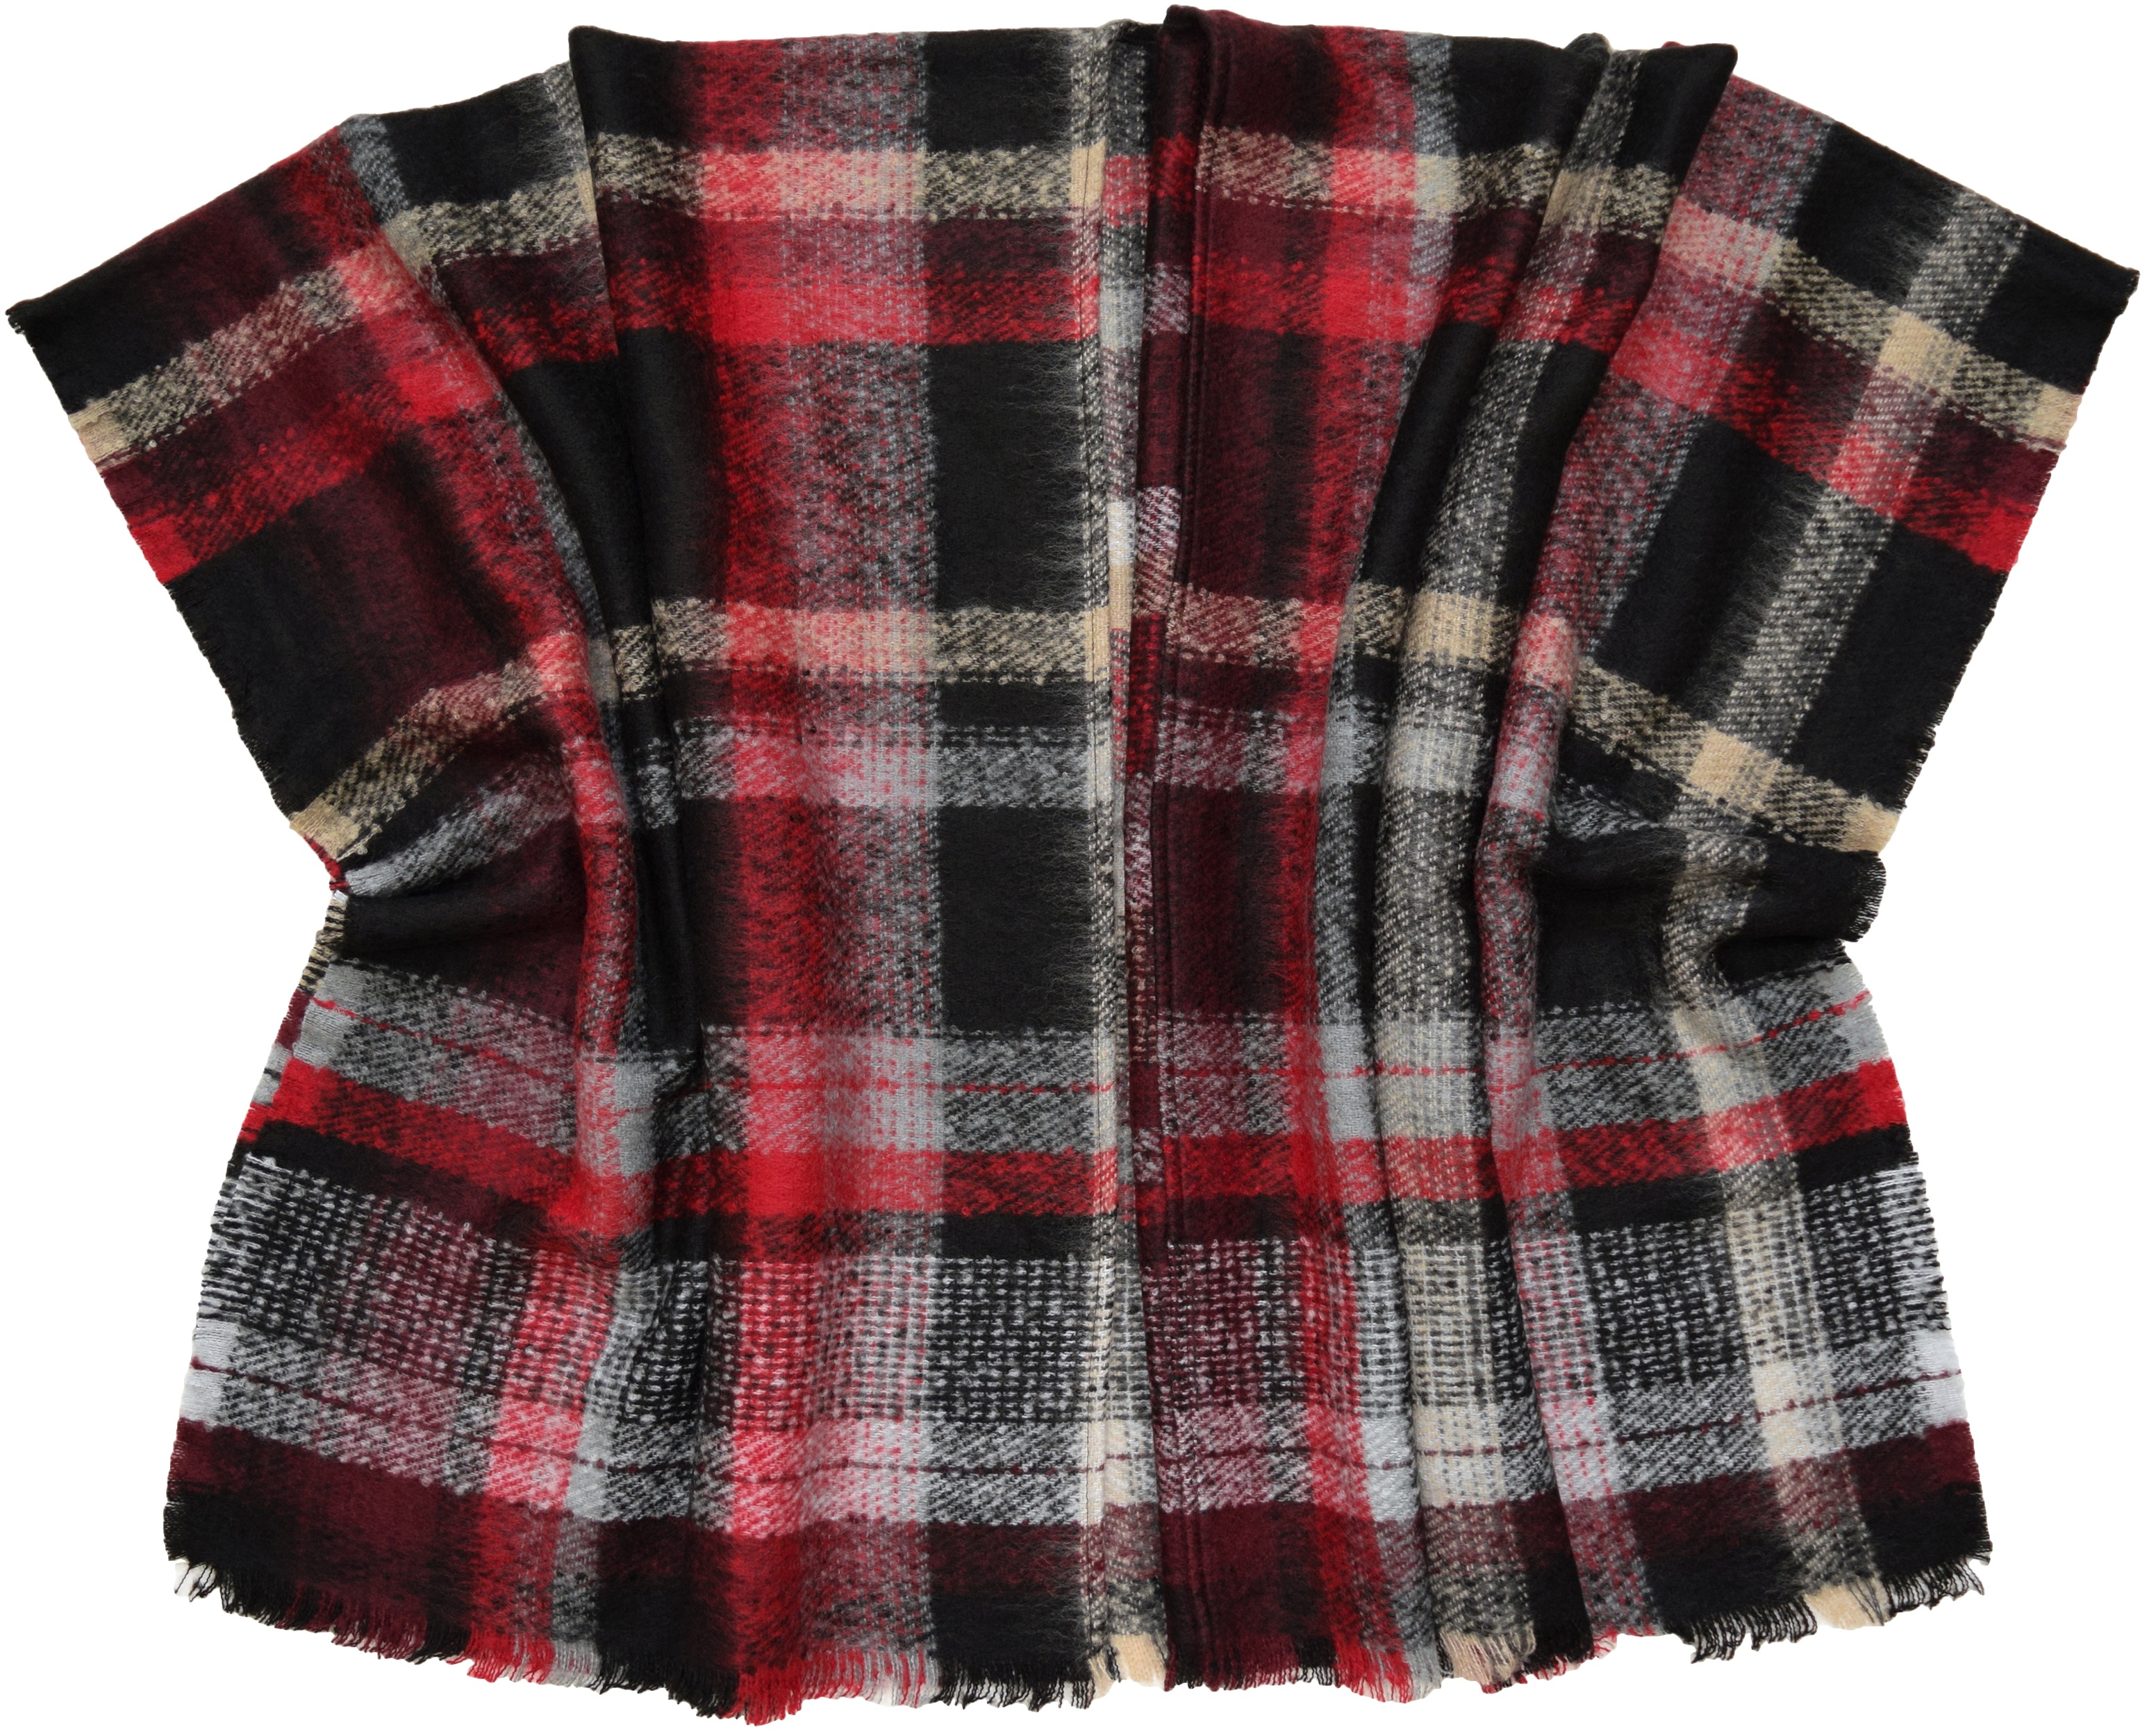 Cape: Textured Plaid- $80.00 Acrylic, Made in Germany 771899186693